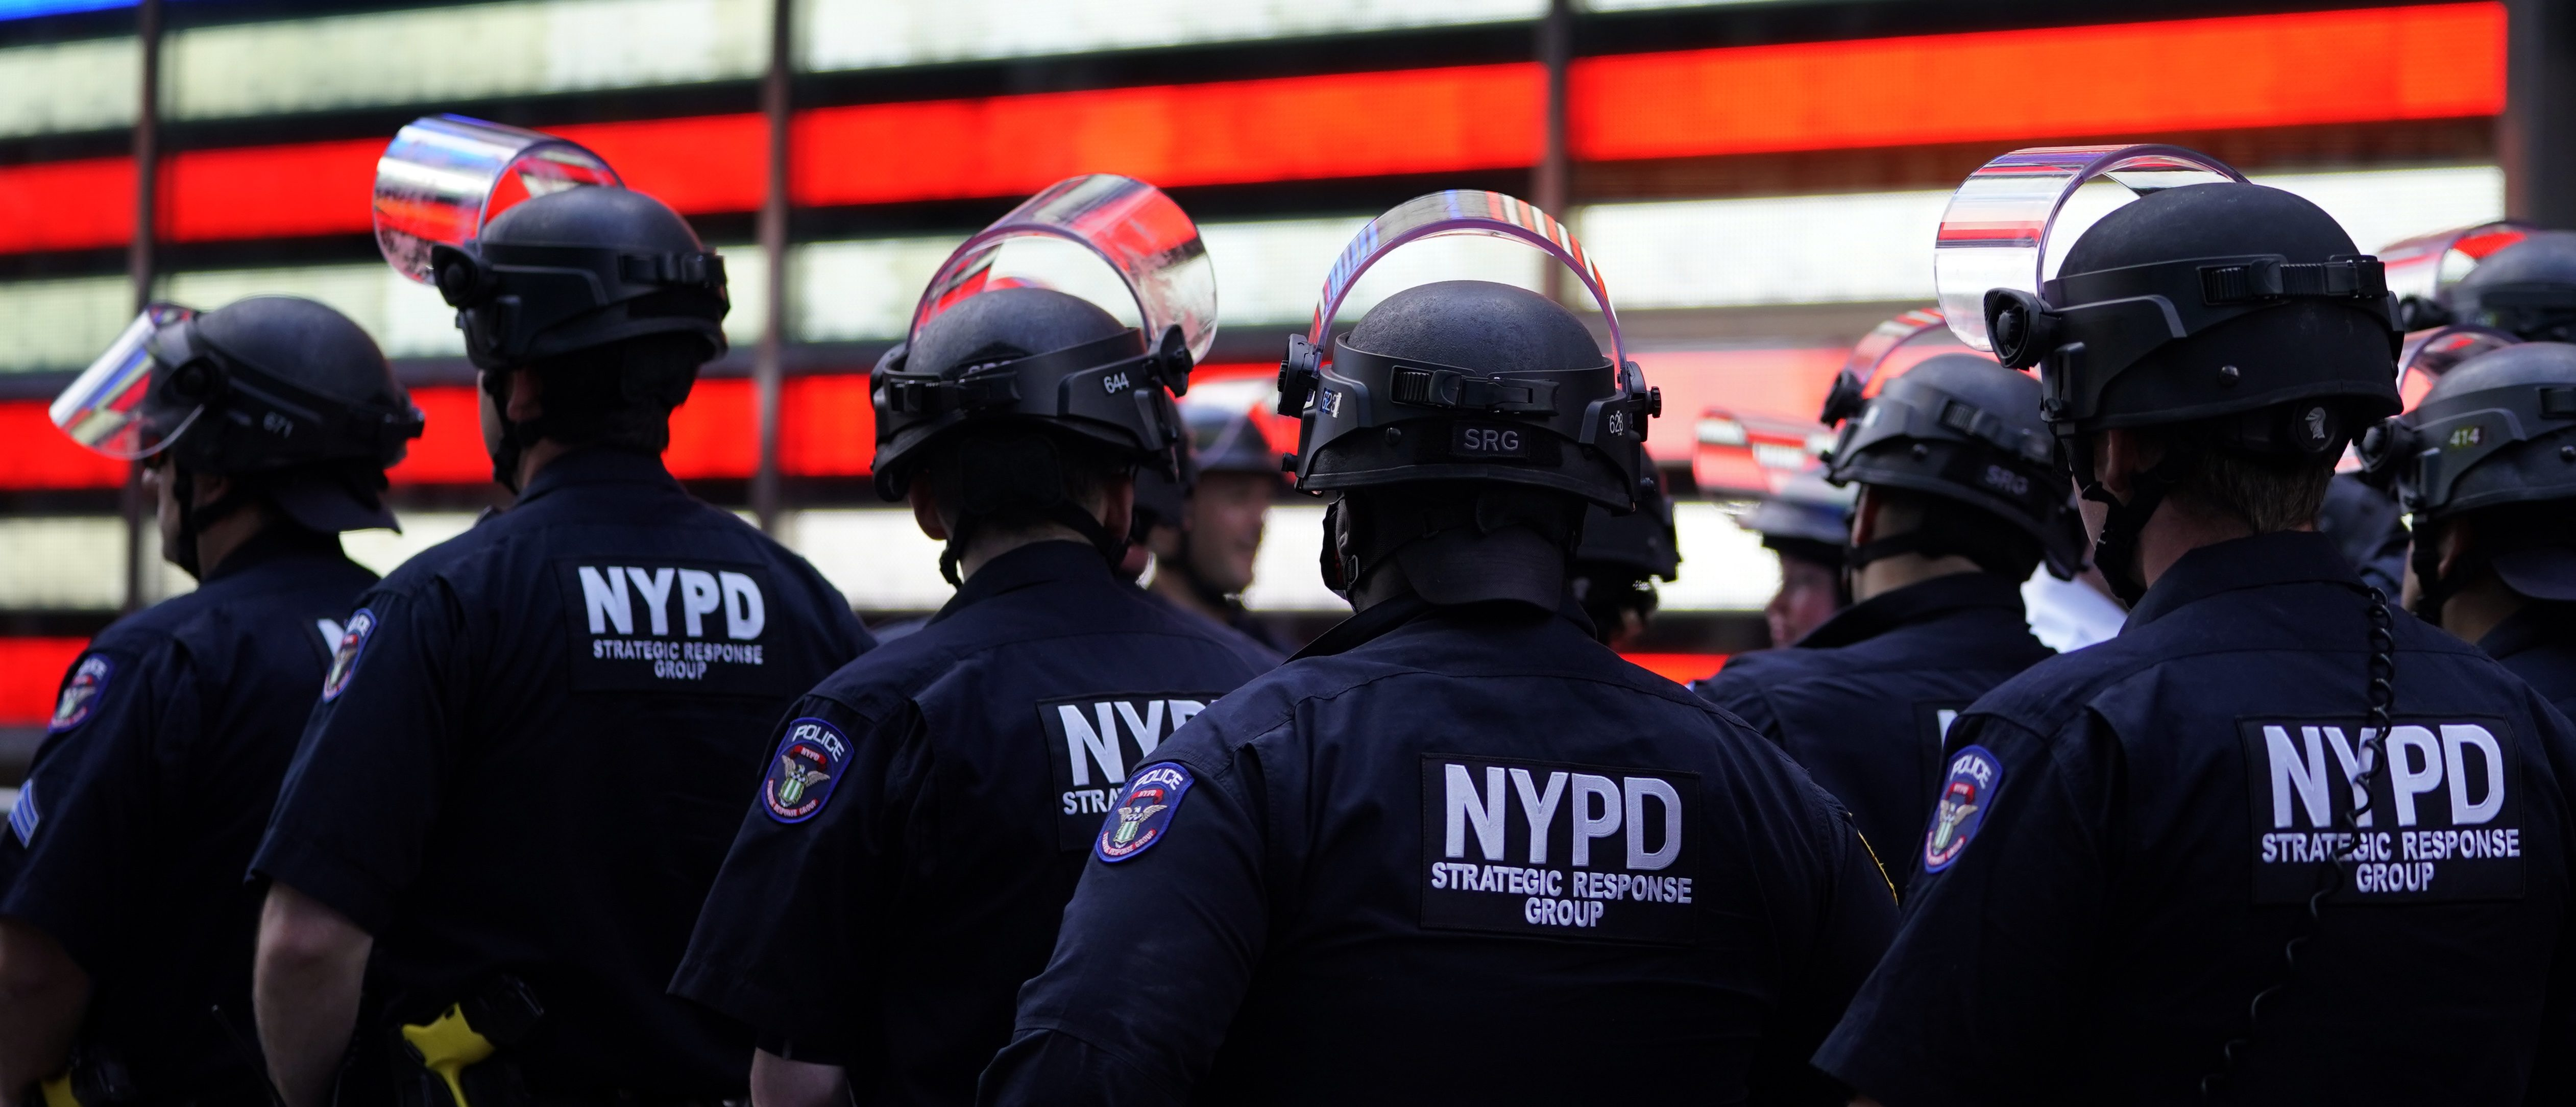 """TOPSHOT - NYPD police officers watch demonstrators in Times Square on June 1, 2020, during a """"Black Lives Matter"""" protest. - New York's mayor Bill de Blasio today declared a city curfew from 11:00 pm to 5:00 am, as sometimes violent anti-racism protests roil communities nationwide. Saying that """"we support peaceful protest,"""" De Blasio tweeted he had made the decision in consultation with the state's governor Andrew Cuomo, following the lead of many large US cities that instituted curfews in a bid to clamp down on violence and looting. (Photo by TIMOTHY A. CLARY / AFP) (Photo by TIMOTHY A. CLARY/AFP via Getty Images)"""